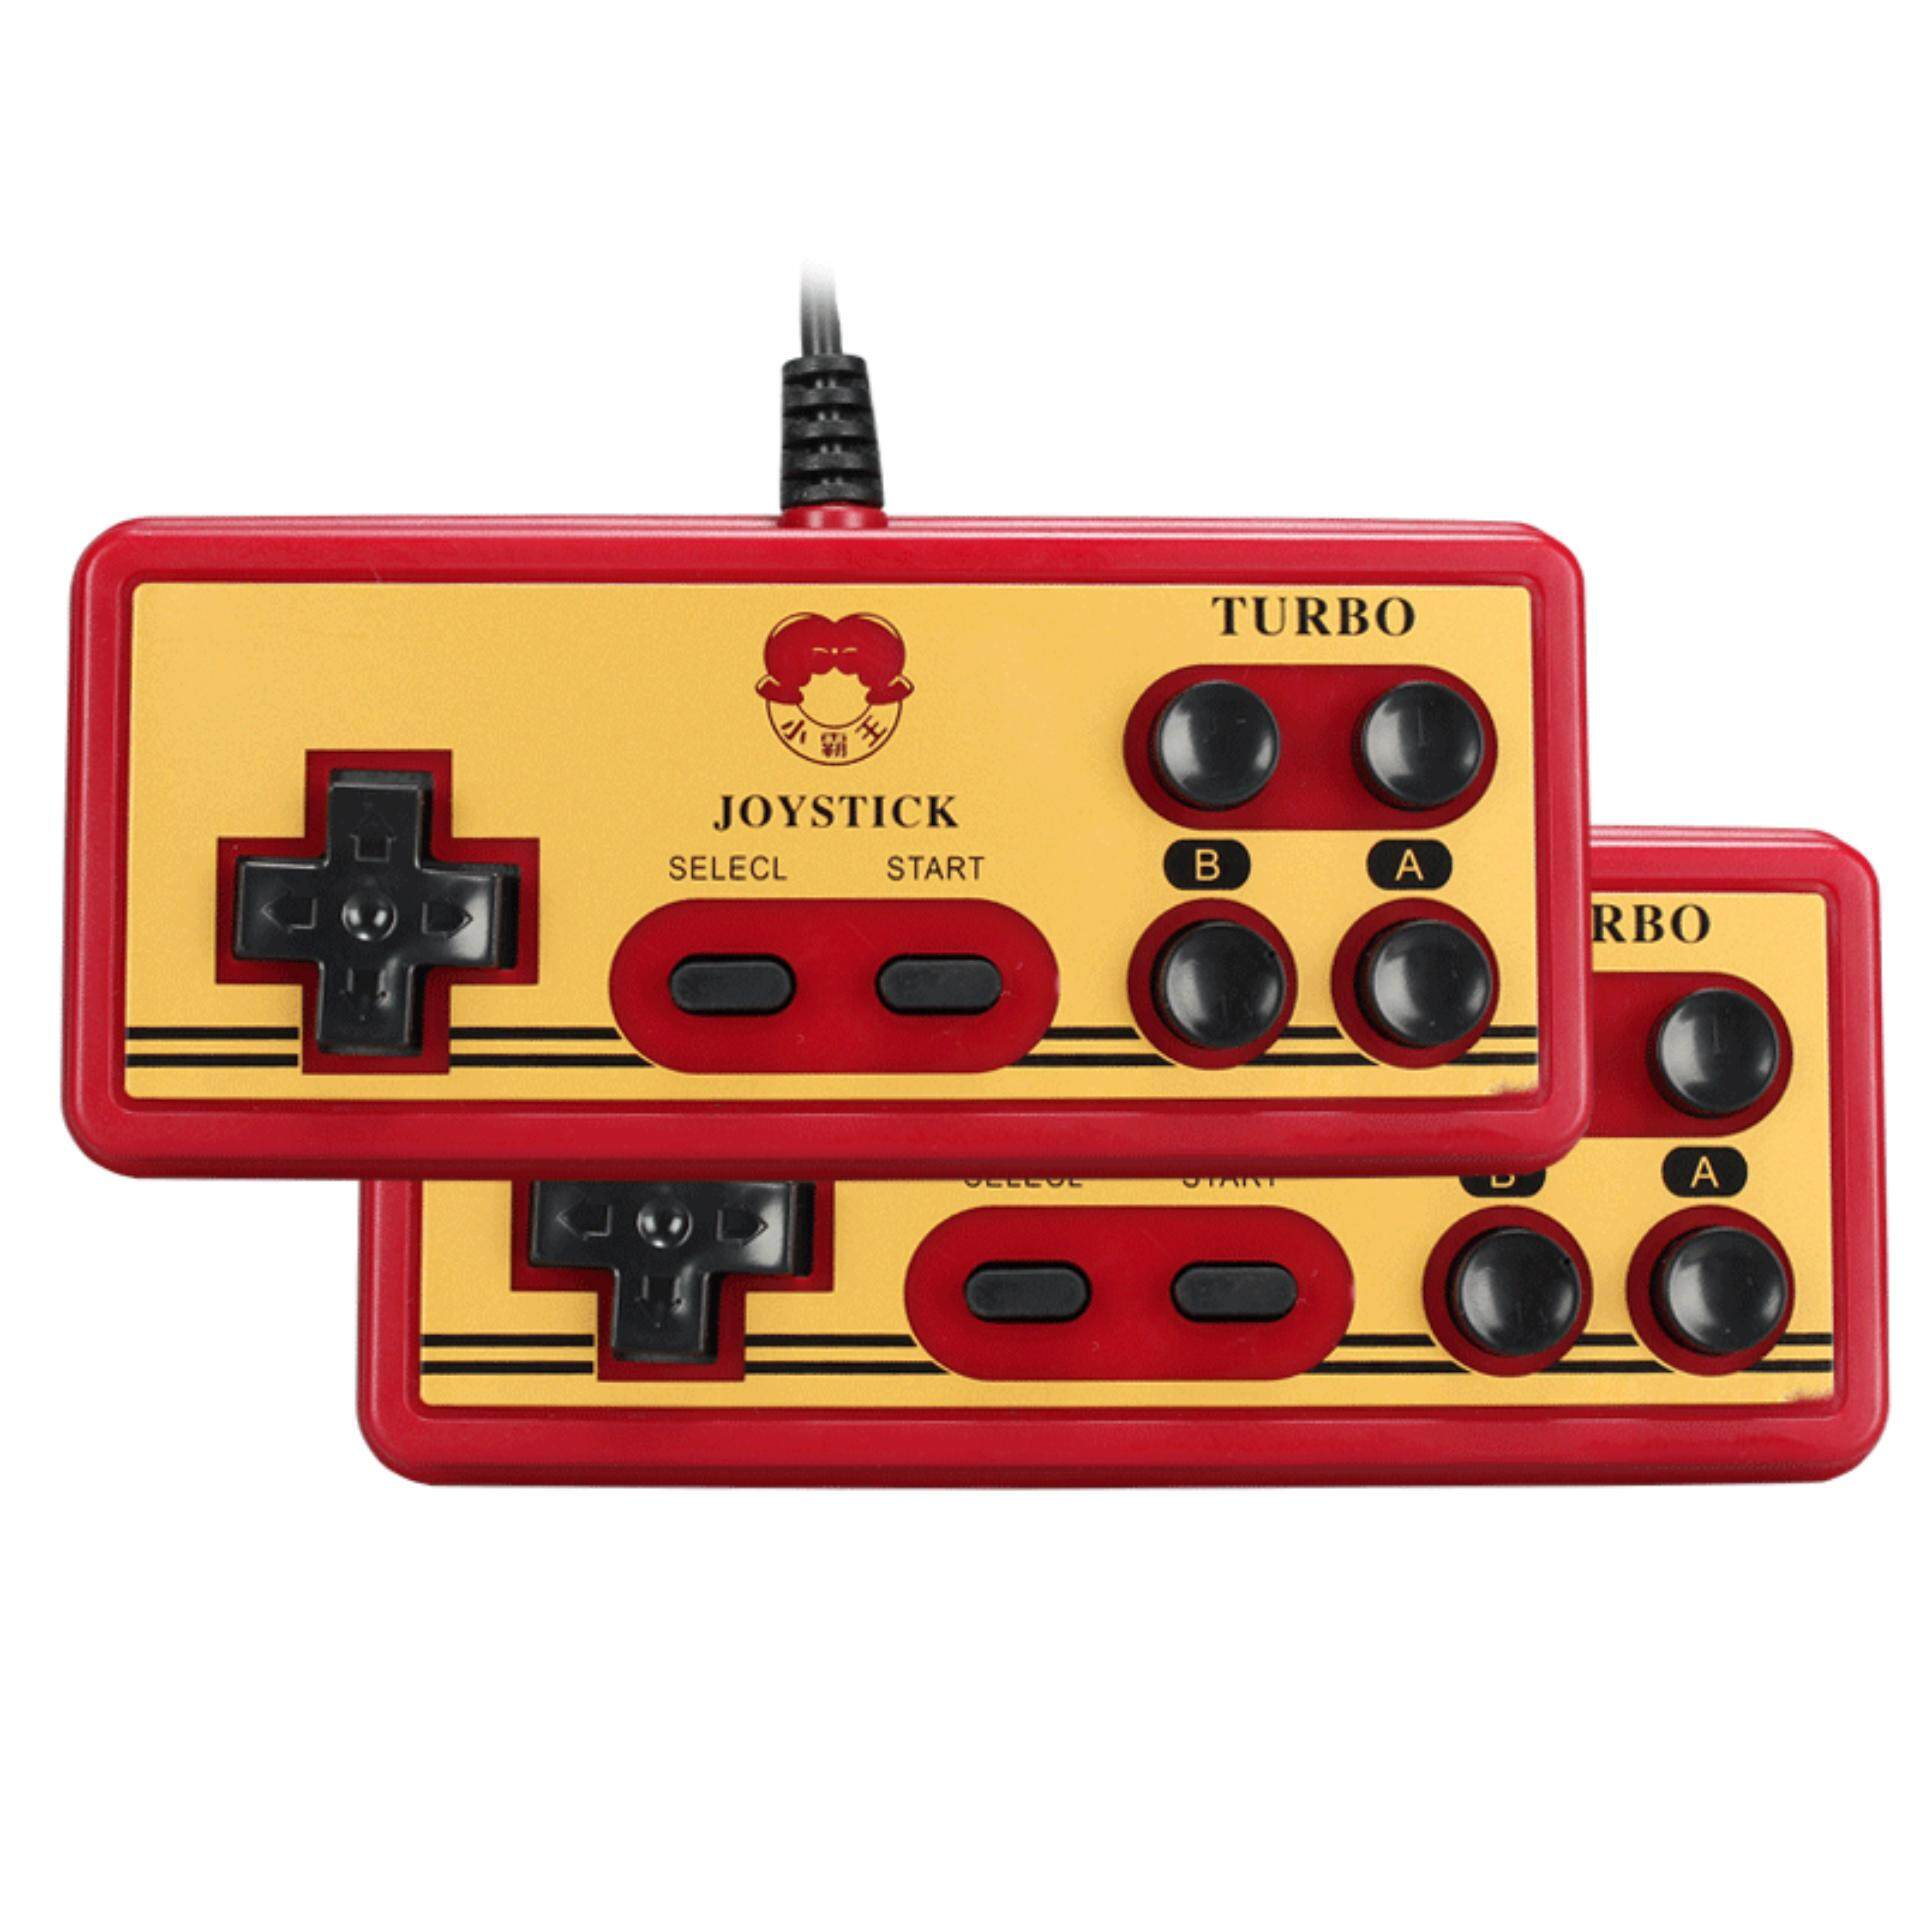 [HOT SELLING] 2 Player TV Video Game System Console Xiao Ba Wang D99 With Free 500 In1 and 4 in 1Games Cards